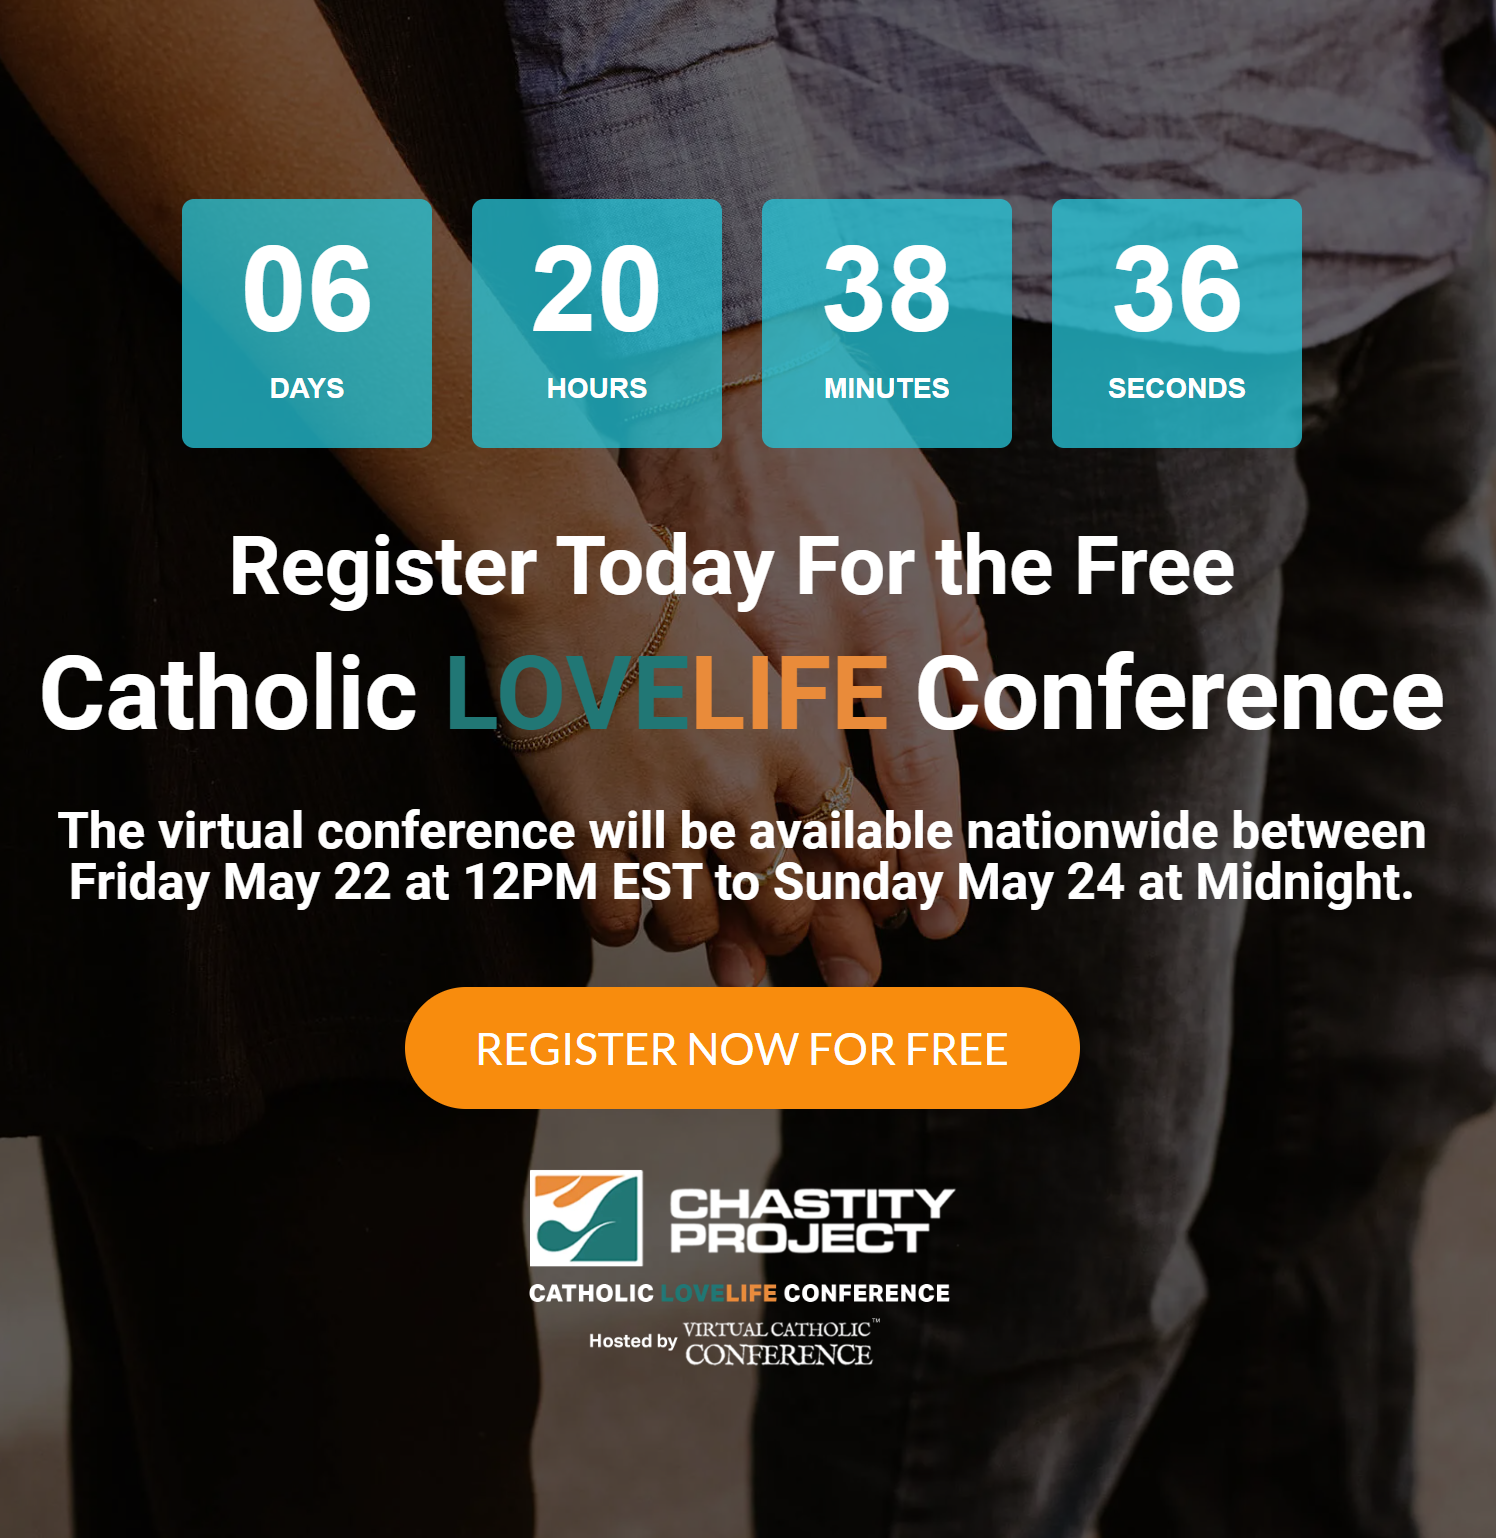 Catholic Love Life Conference May 22-24 (FREE)